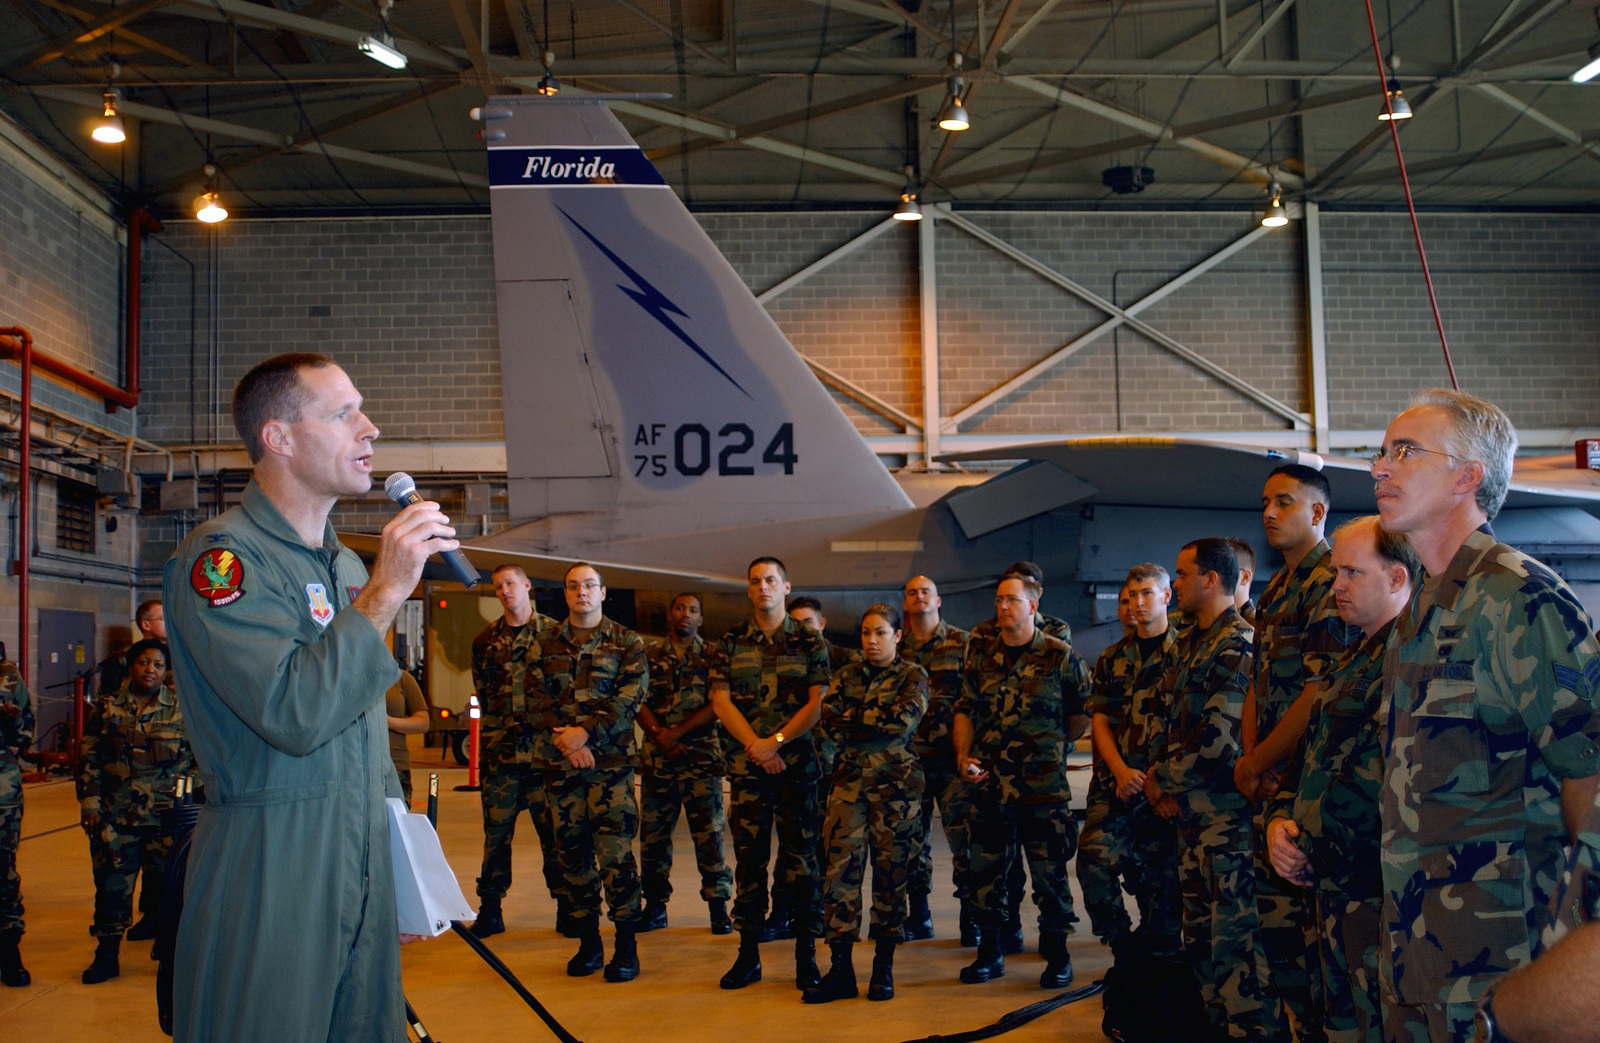 U.S. Air Force COL. James A. Firth, Commander, 125th Fighter Wing, briefs members of the Unit regarding state activation orders for Hurricane Ivan, at Jacksonville International Airport, Fla, on September 11, 2004. (U.S. Air Force PHOTO by SENIOR MASTER SGT. Lea-An Steiner) (Released)